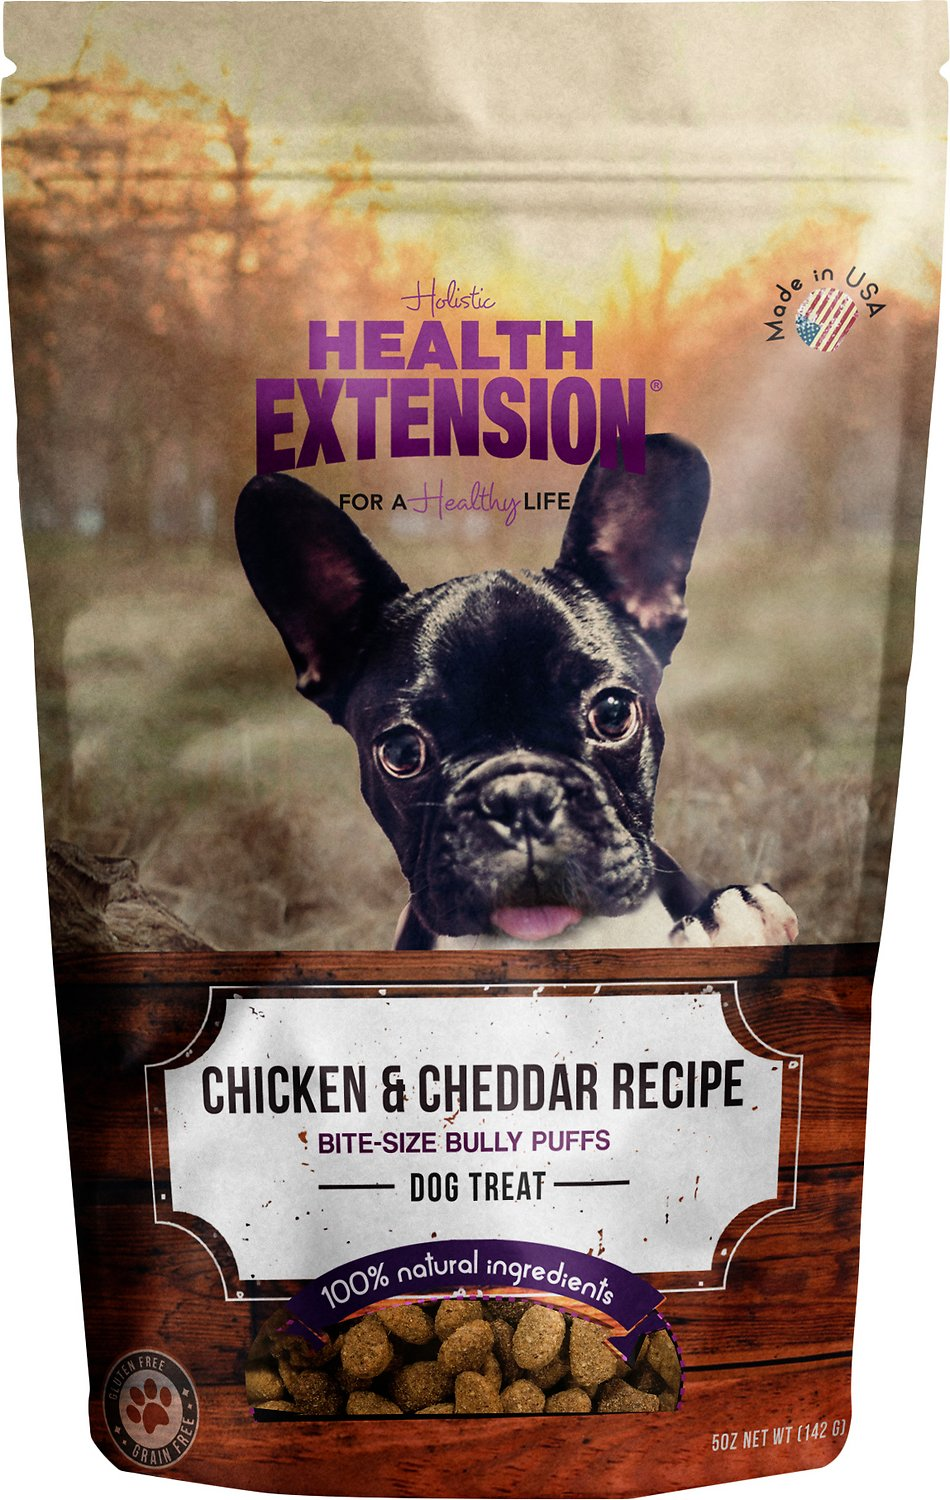 Health Extension Bully Puffs Chicken & Cheddar Cheese Grain-Free Dog Treats, 5-oz bag